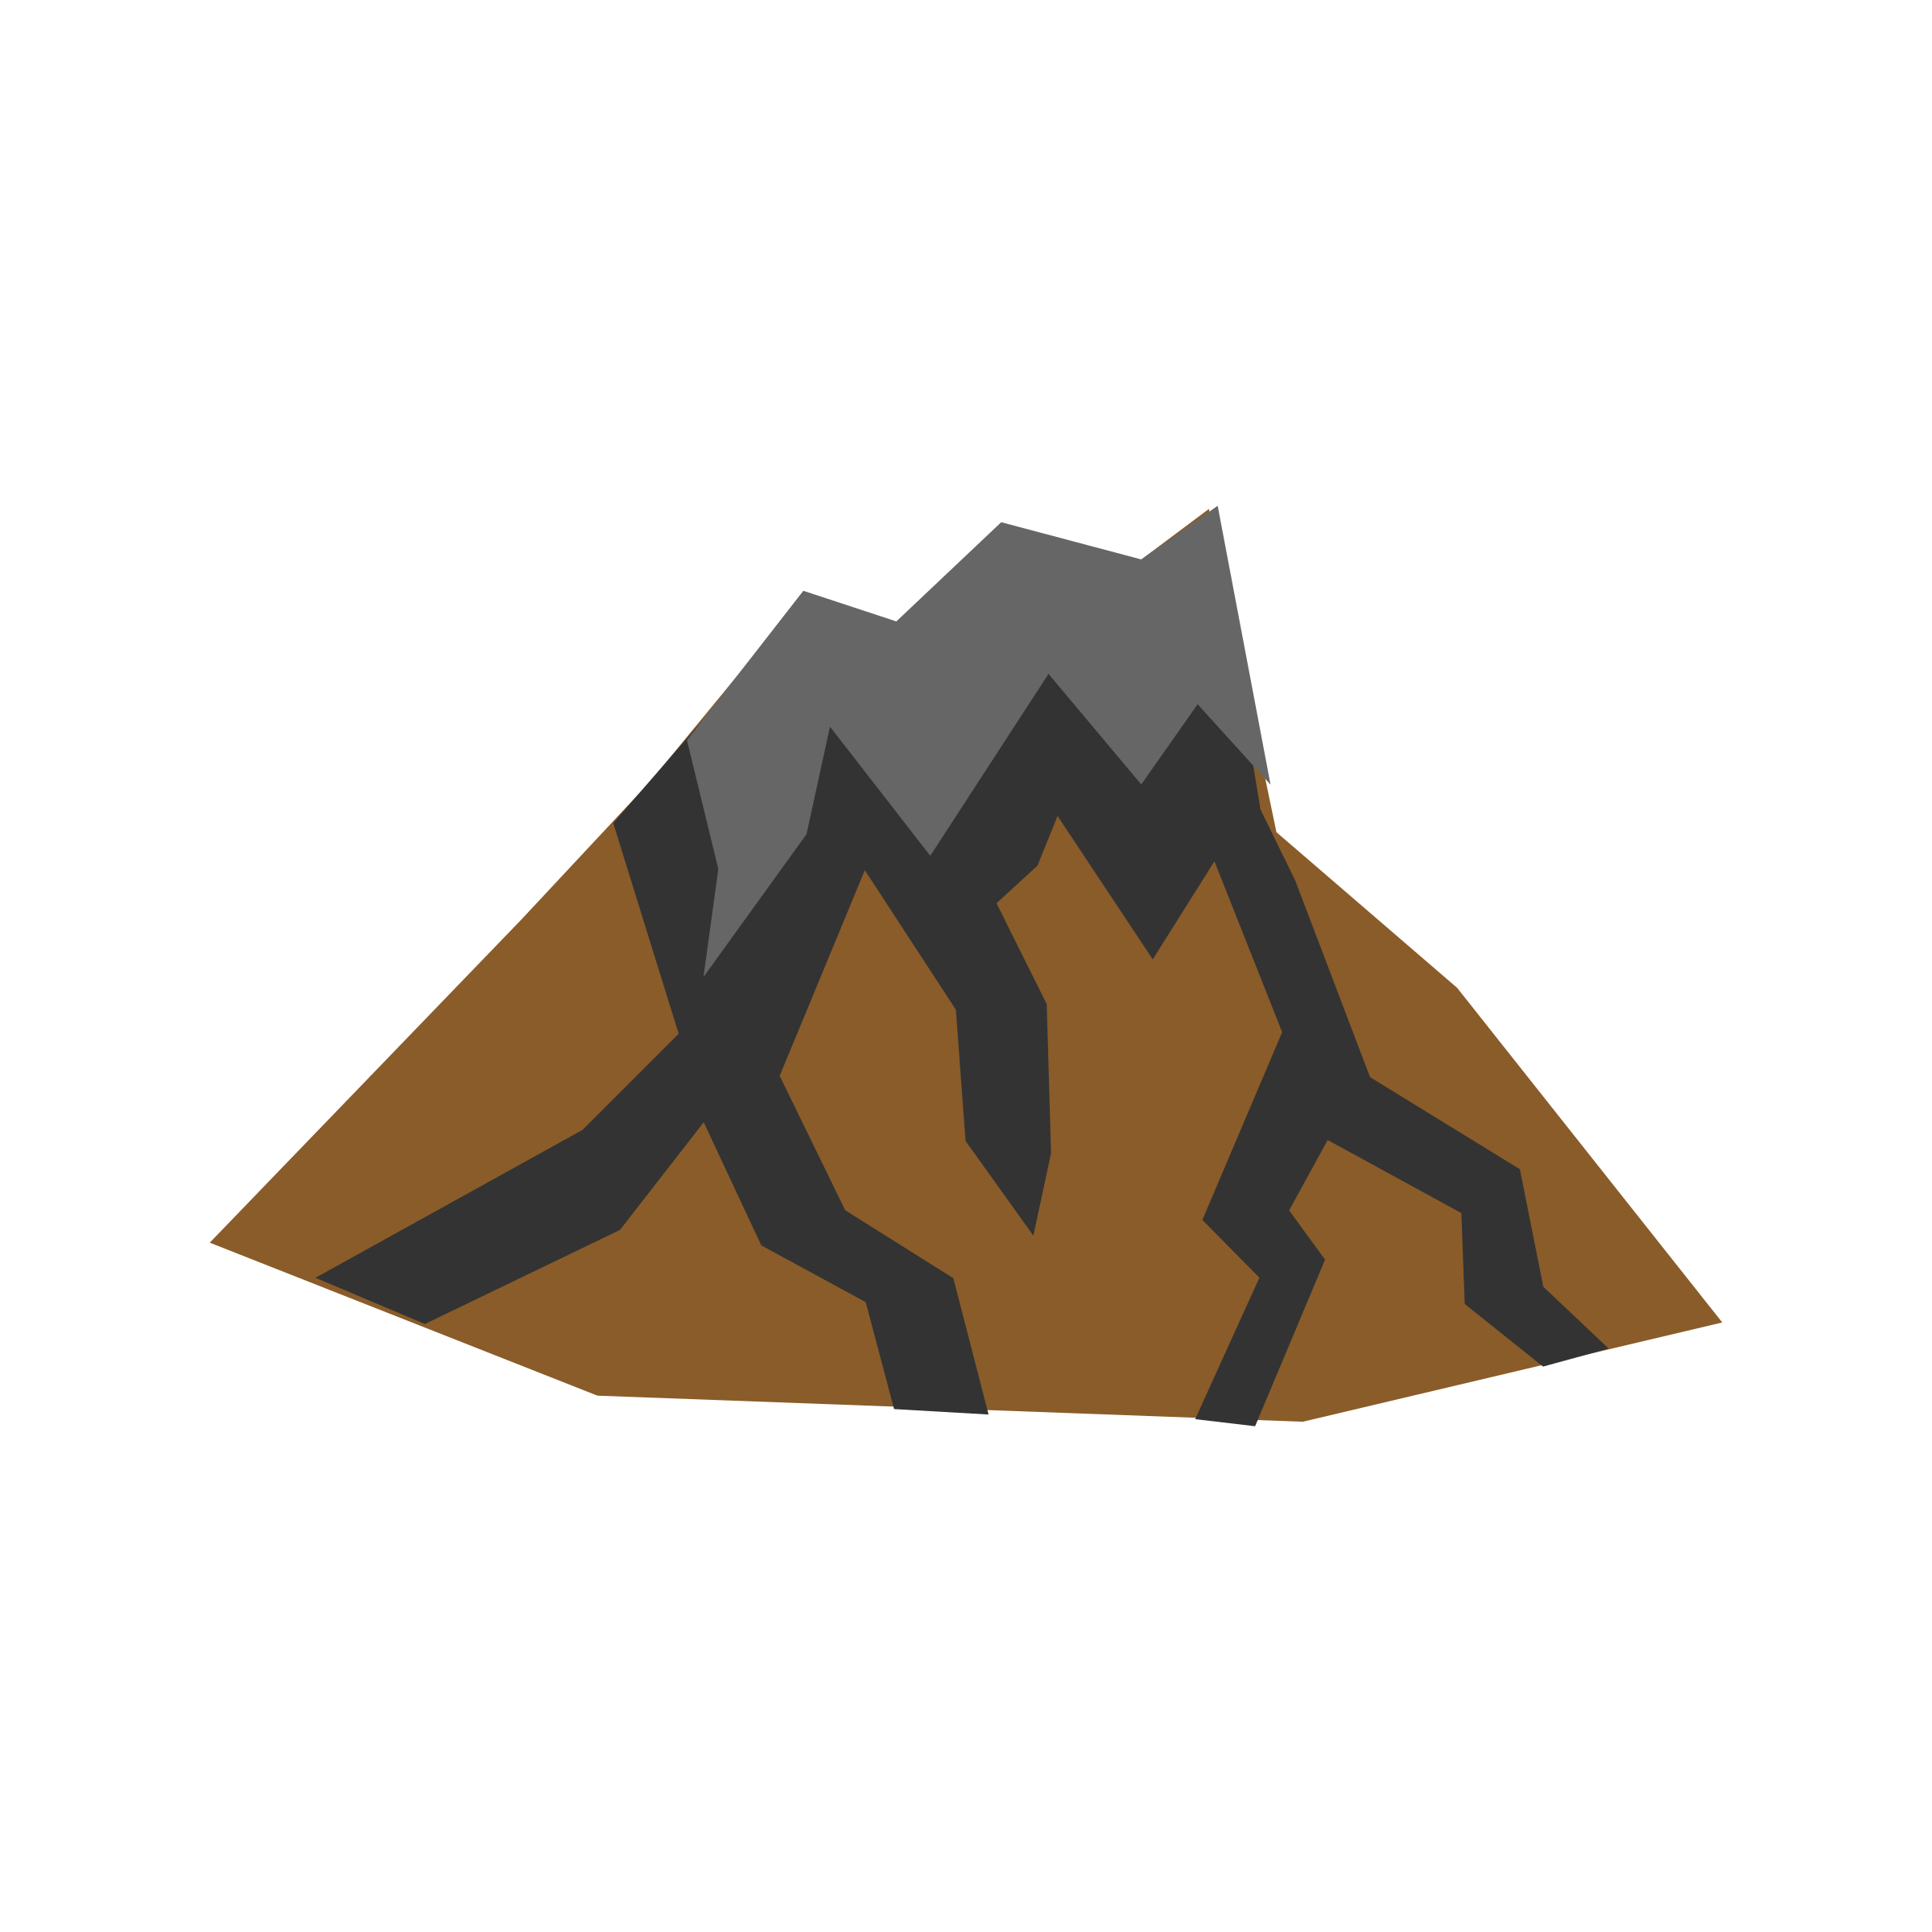 Volcano Clipart Images - ClipArt Best